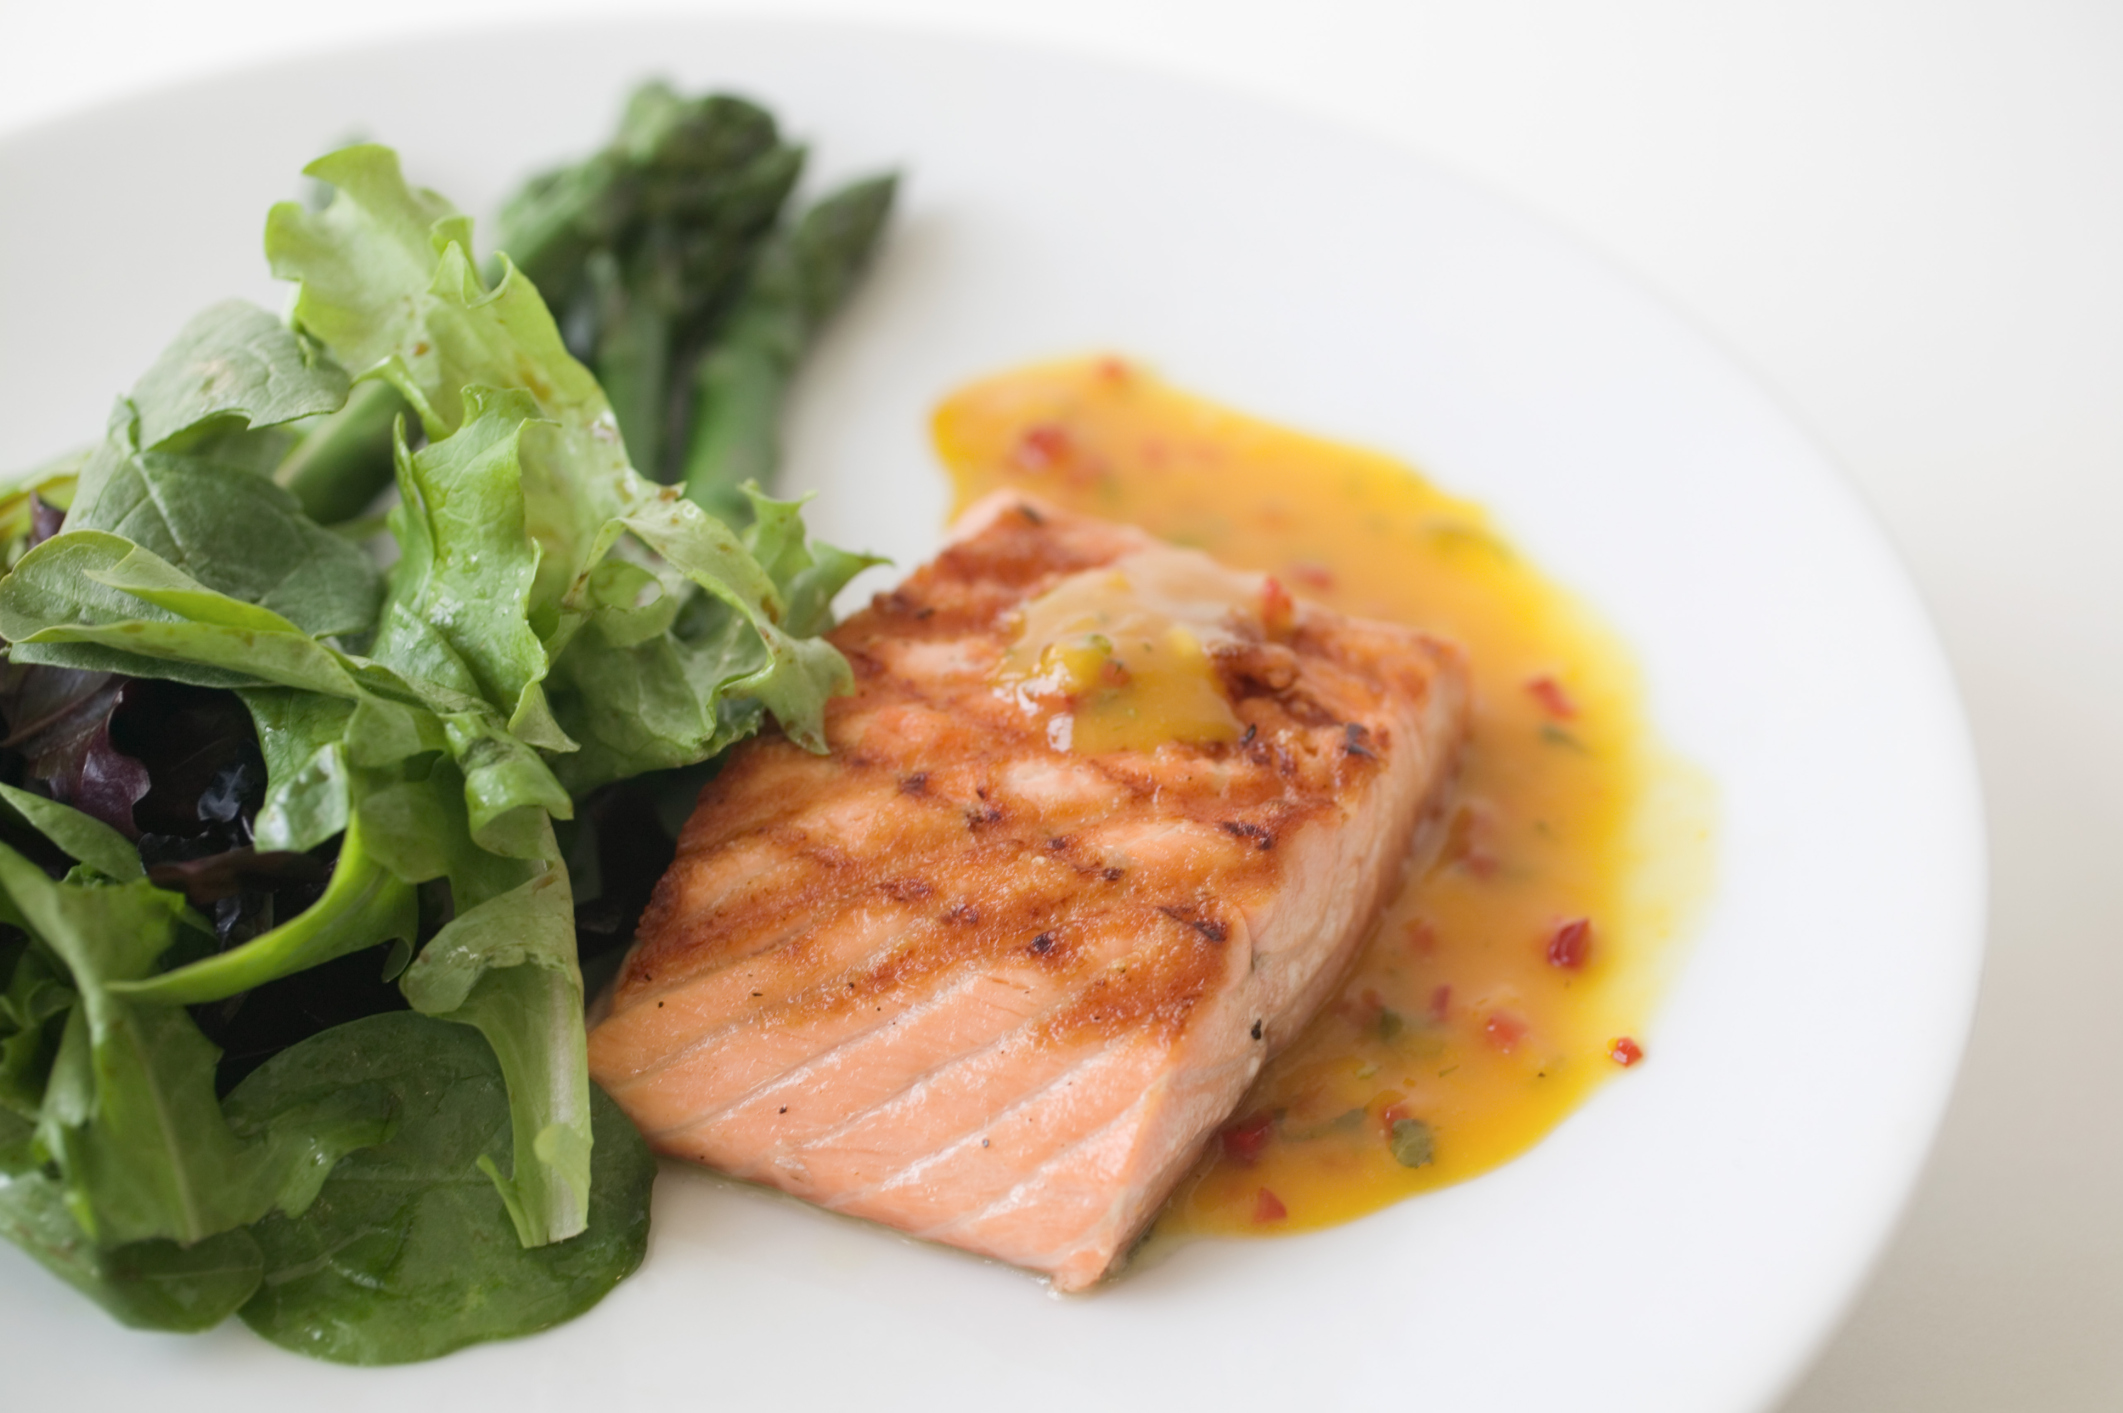 Salmon doesn't have carbohydrates.